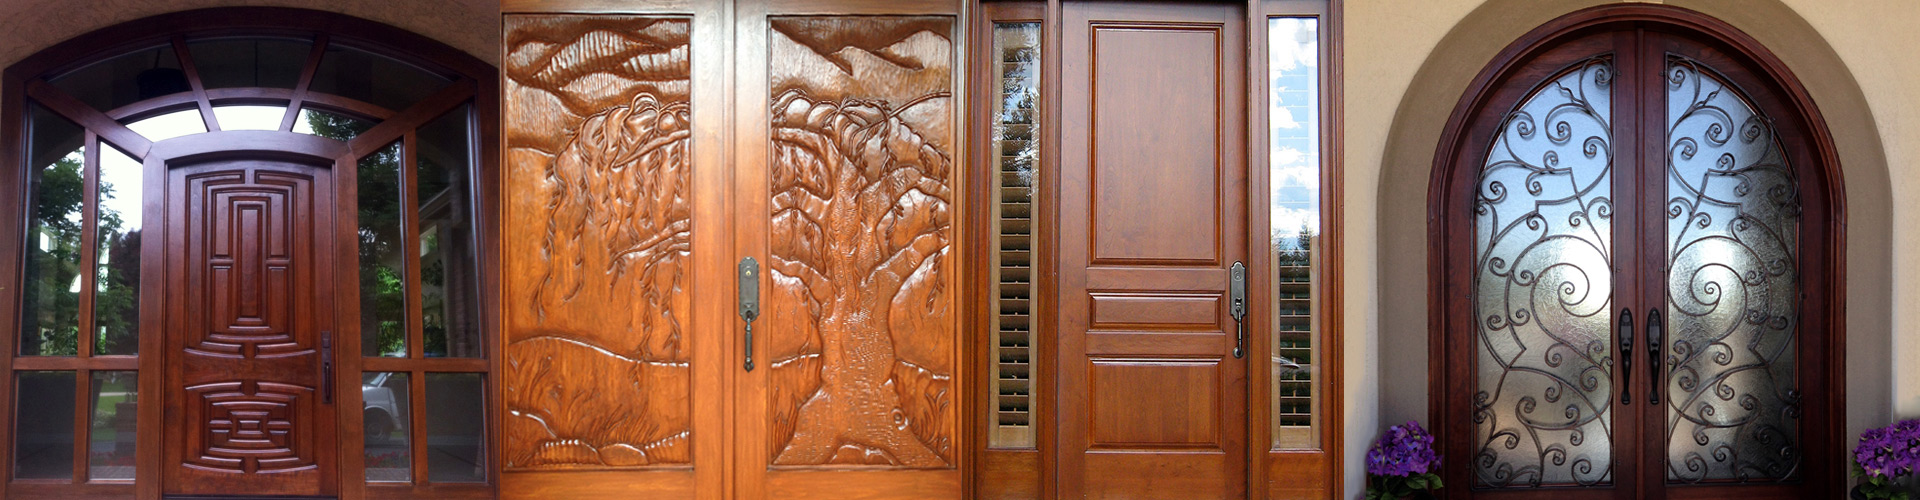 Wood Door Repair | Wood Door Refinishing | Wood Door Restoration ...